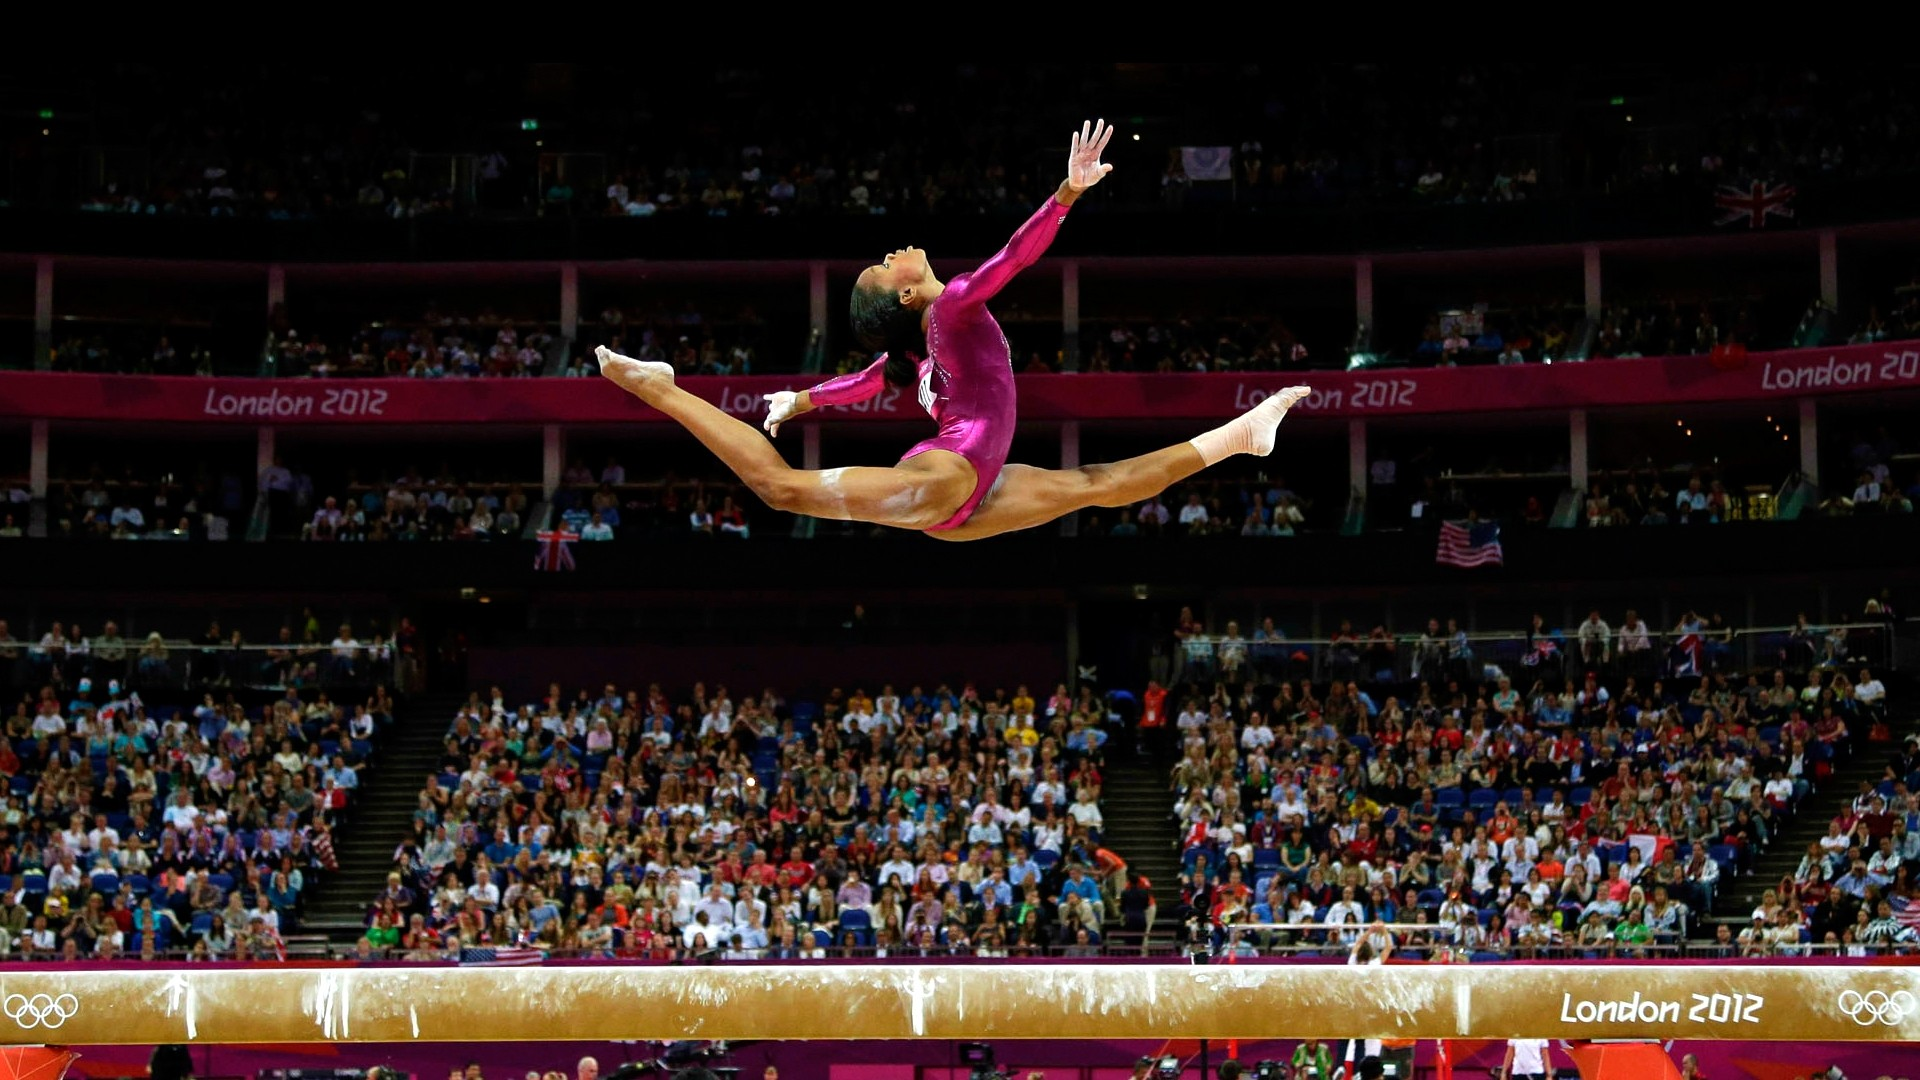 Gymnastics Wallpapers High Quality Download 1920x1080